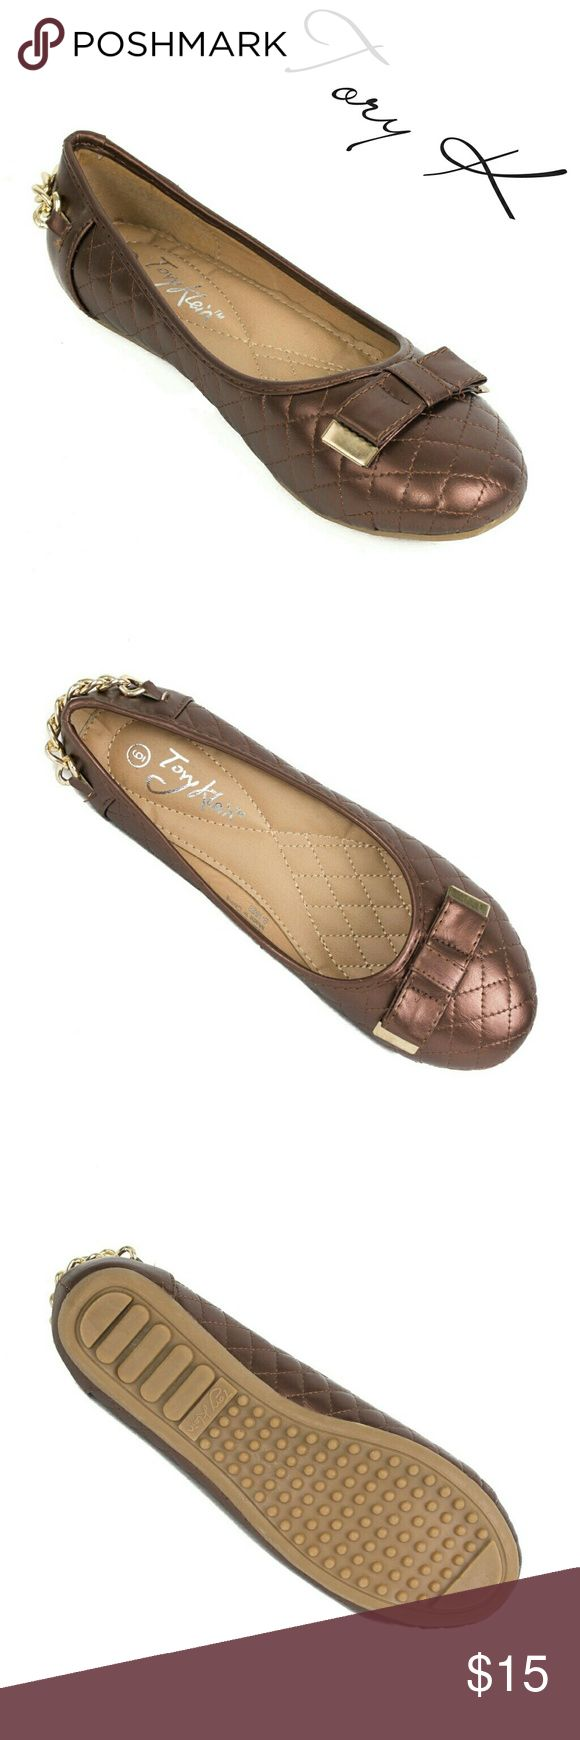 """Women Ballerina Chain Flats w Bow, b-1623, Brown Brand new Tory Klein woman ballerina flats shoes in PU leather with a metal tipped bow and a chain around the back. Soft quilted sole. Bubbled bottom sole for extra traction. A true statement in ladies fashion! Measurements: larger sizes run small. Size 8 measures 9.5 inches, sz 8.5 - 9 3/4"""", sz 9 - 10"""", sz 10 - 10.5"""", all half sizes are in 1/4 inch increments of each other. Tory K  Shoes Flats & Loafers"""